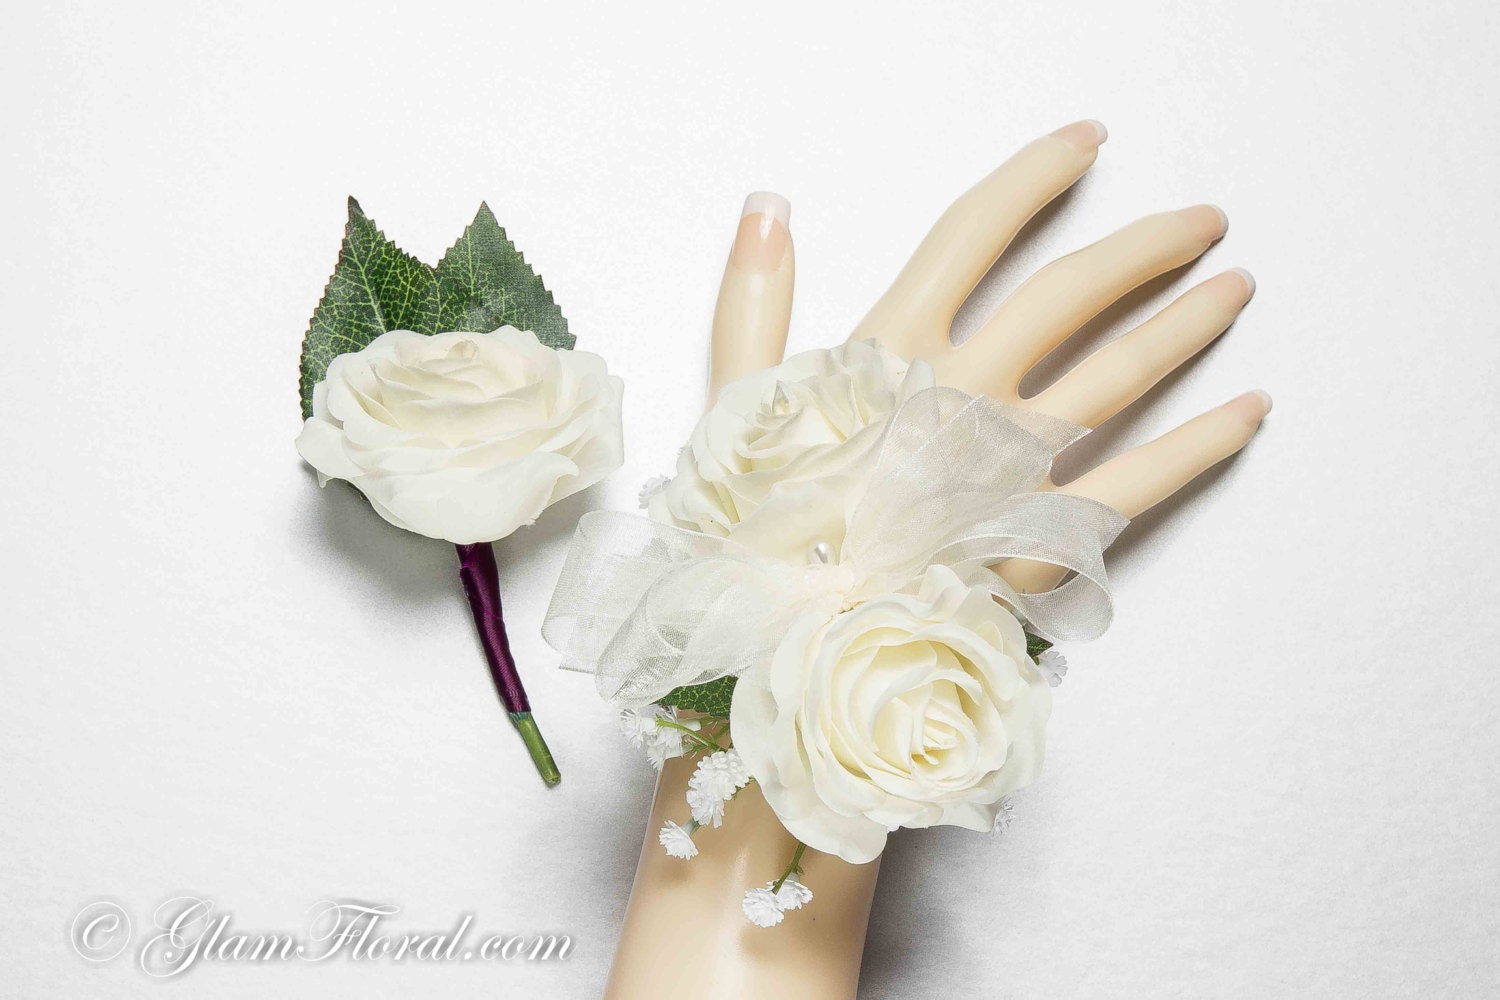 Petite Rose Wrist Corsage & Boutonniere Set Real Touch